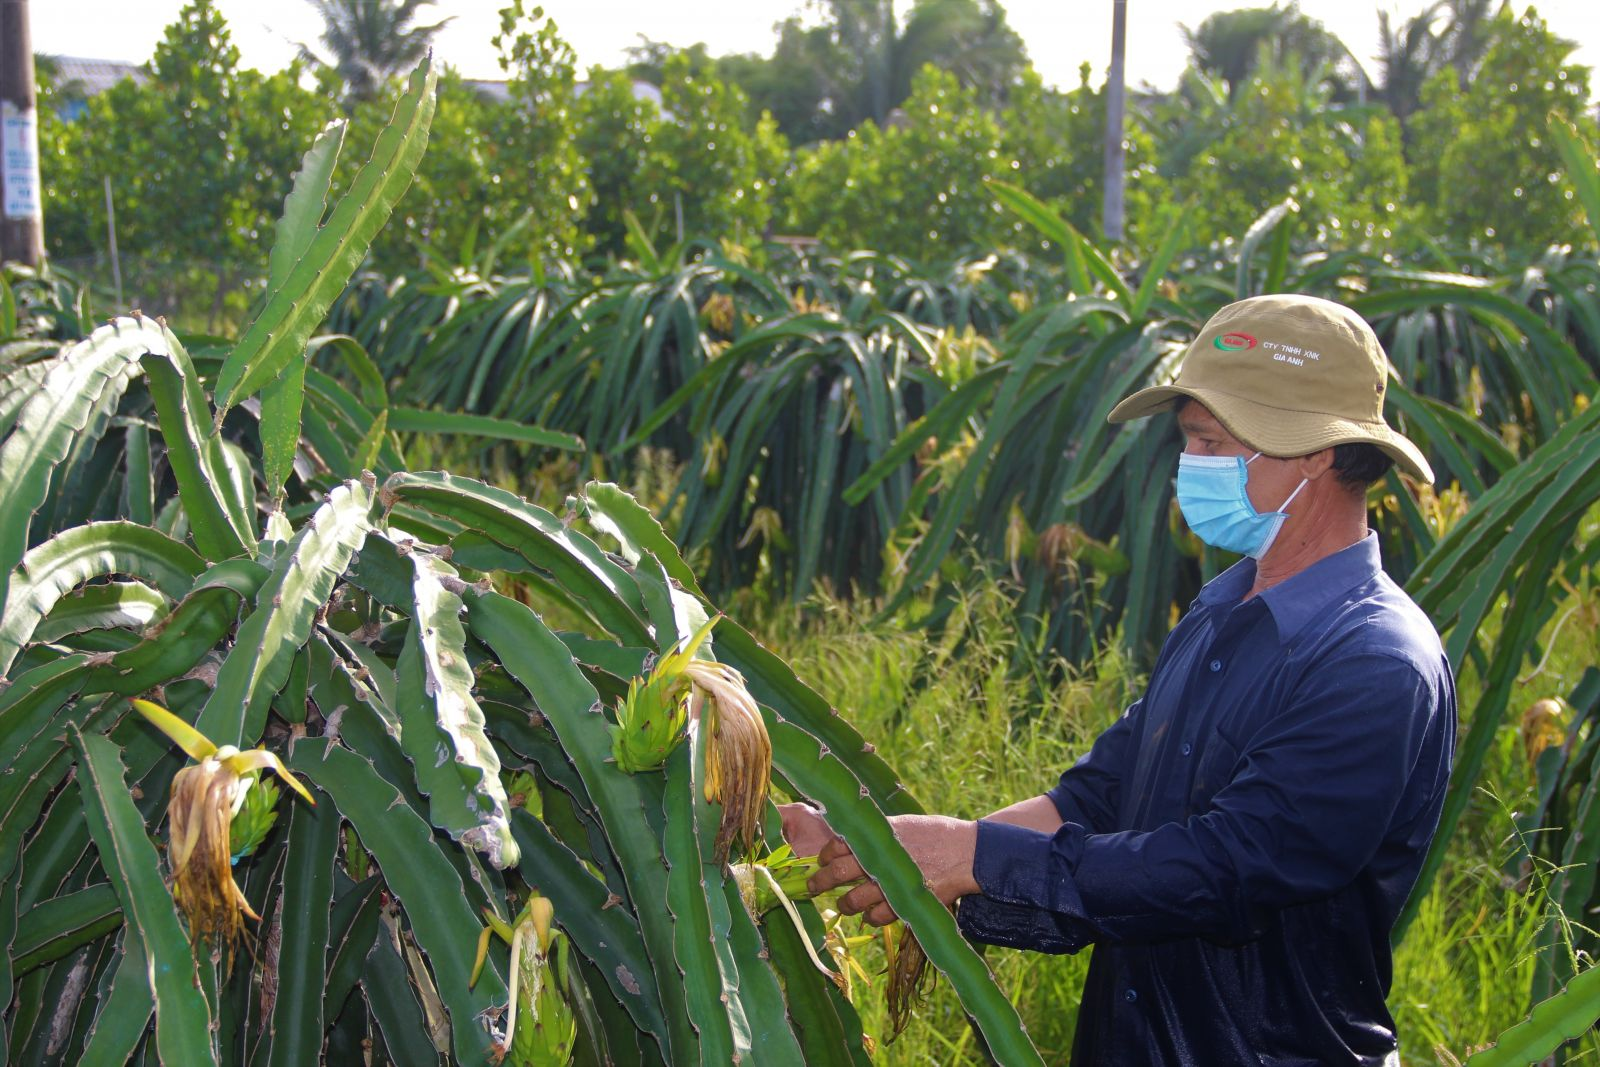 Farmers maintain production while preventing and fighting epidemics